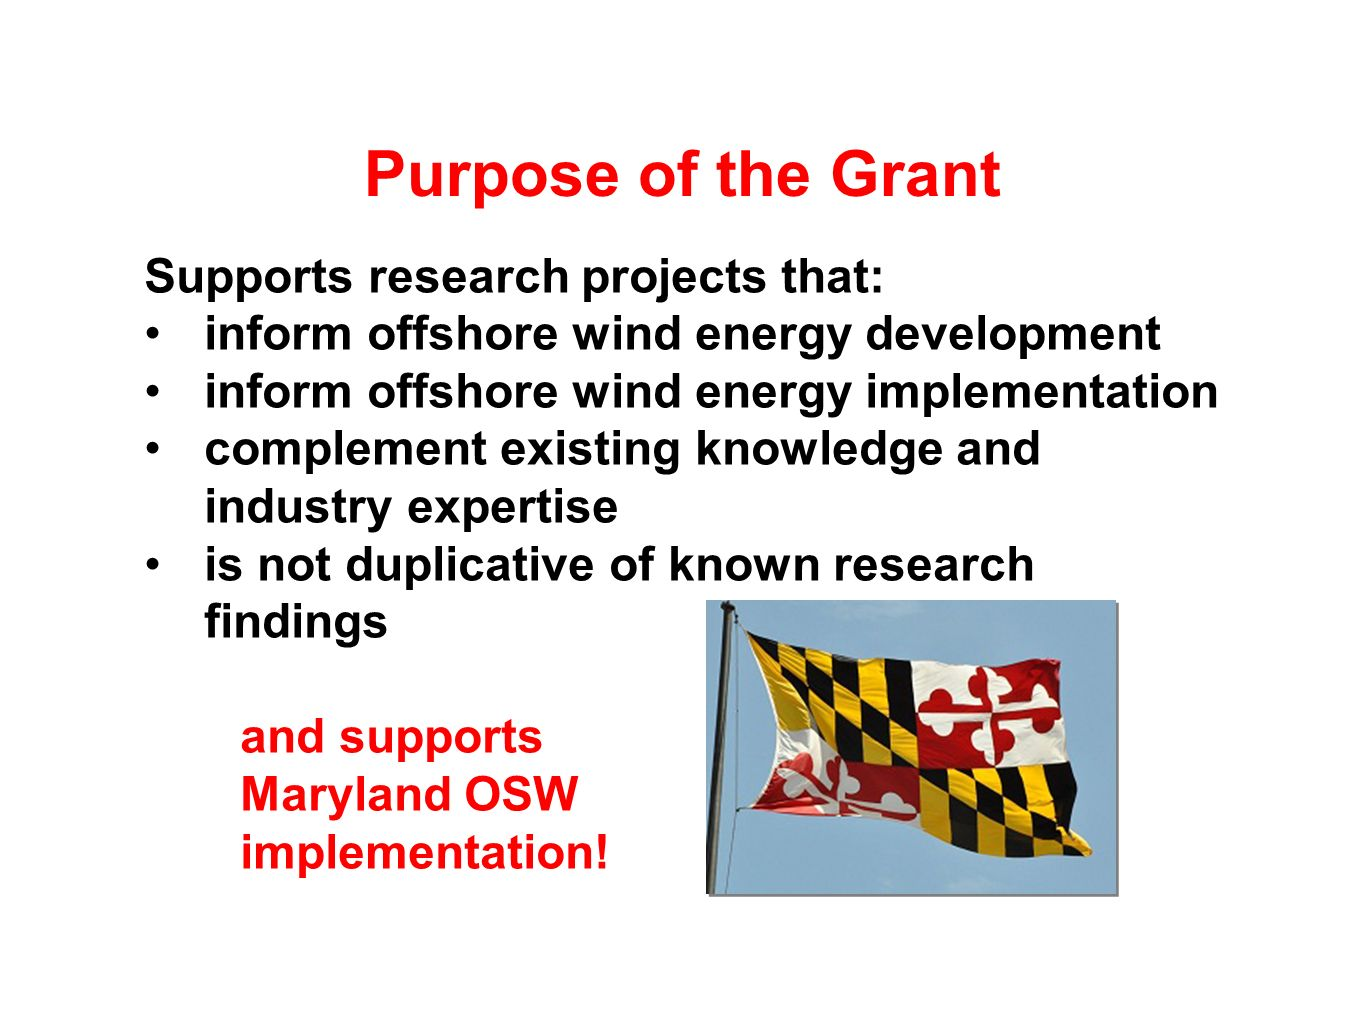 Purpose of the Grant Supports research projects that: inform offshore wind energy development inform offshore wind energy implementation complement existing knowledge and industry expertise is not duplicative of known research findings and supports Maryland OSW implementation!